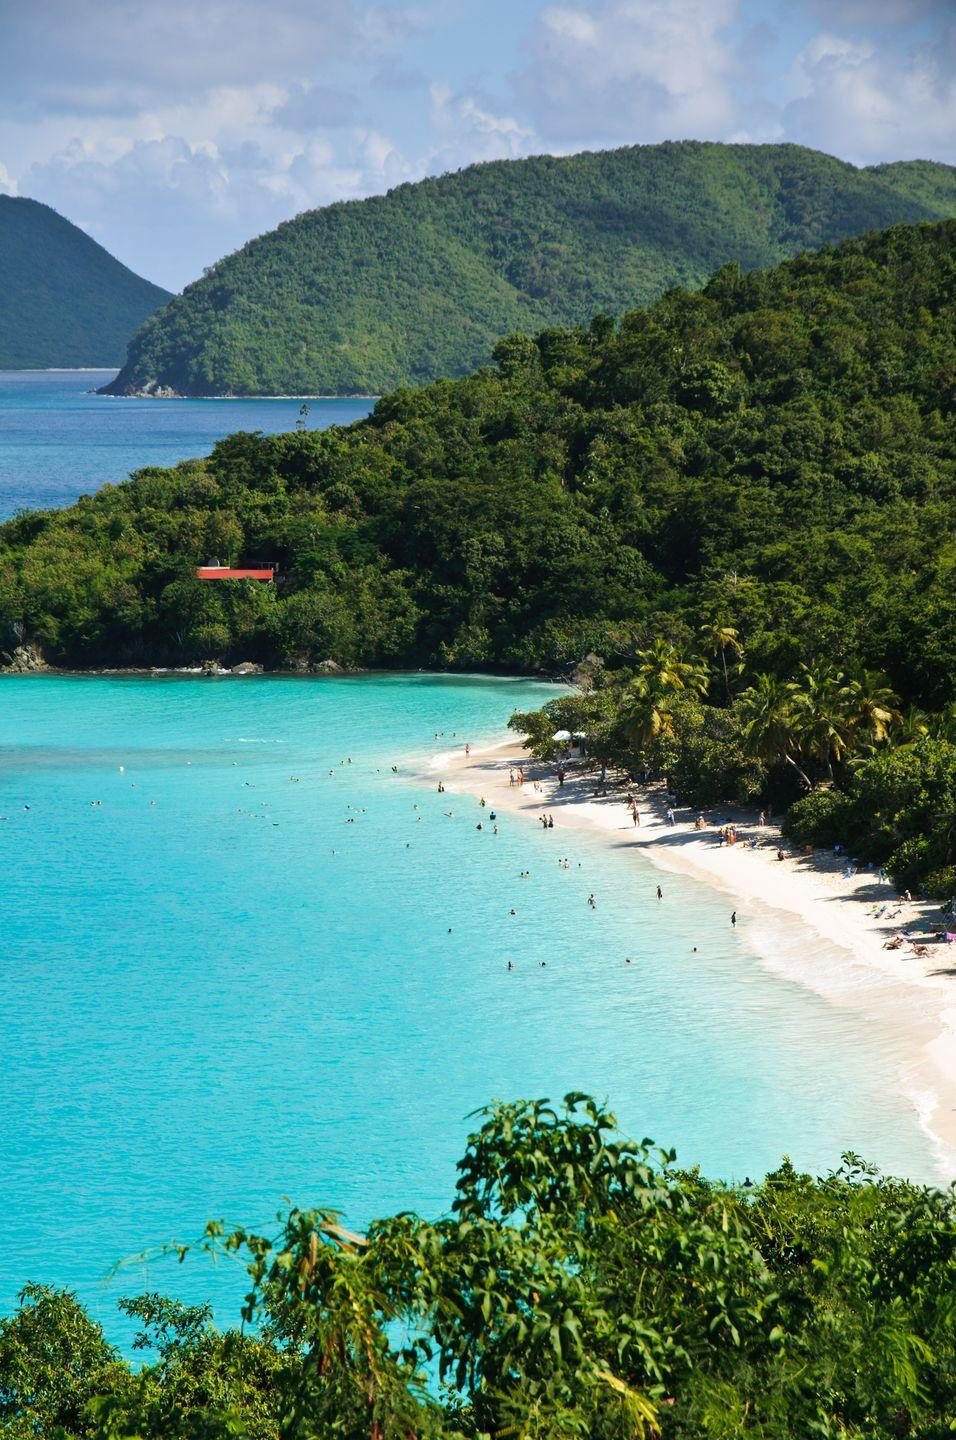 <p>Less bustling than neighboring Trunk Bay but equally beautiful, Maho cements its status as one of the U.S. Virgin Islands' finest white sand beaches. The calm, relatively shallow waters are also a prime feeding ground for sea turtles and rays, making it a thrilling spot for snorkelers of all skill levels.</p>